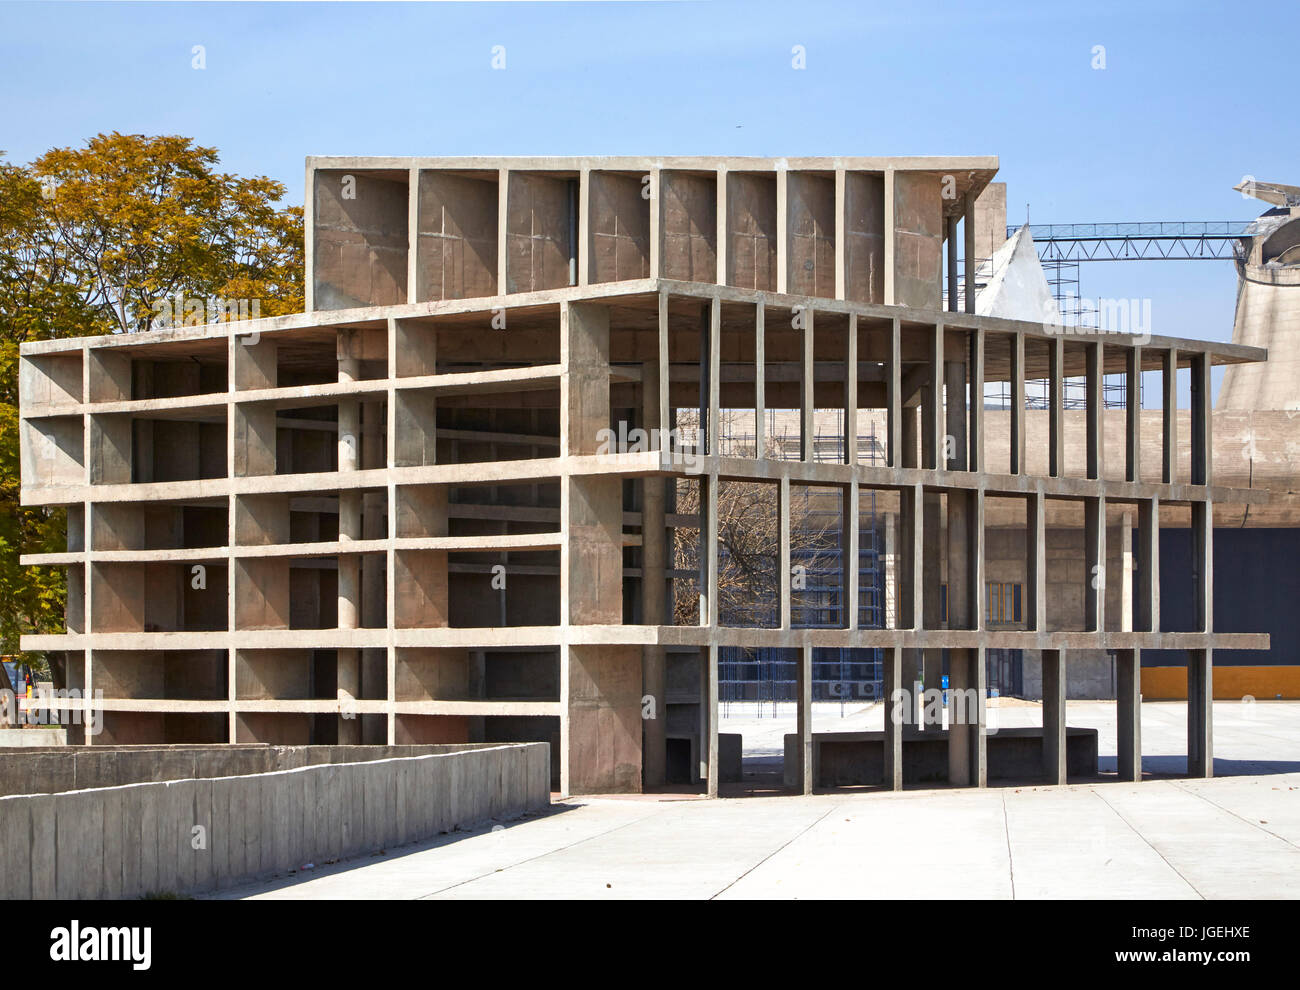 Tower of Winds structure. The Palace of Justice, Chandigarh, India. Architect: Corbusier, 1955. - Stock Image